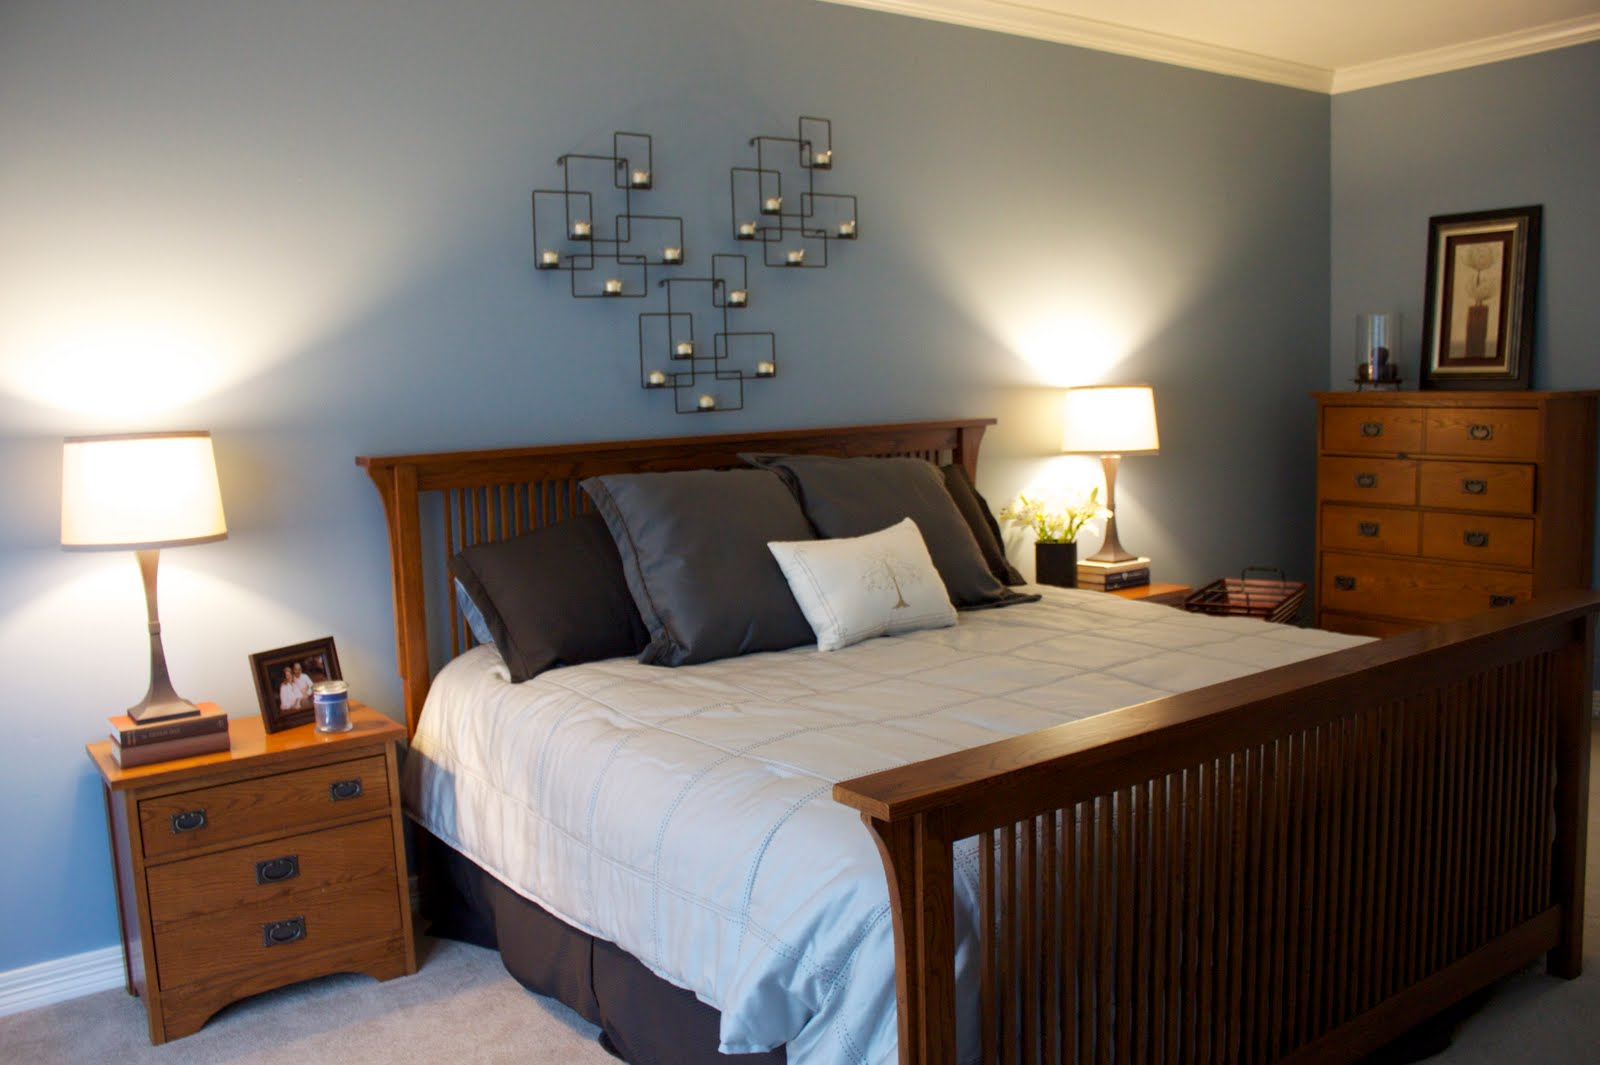 Finesse Your Nest Blue Cream Espresso Master Bedroom